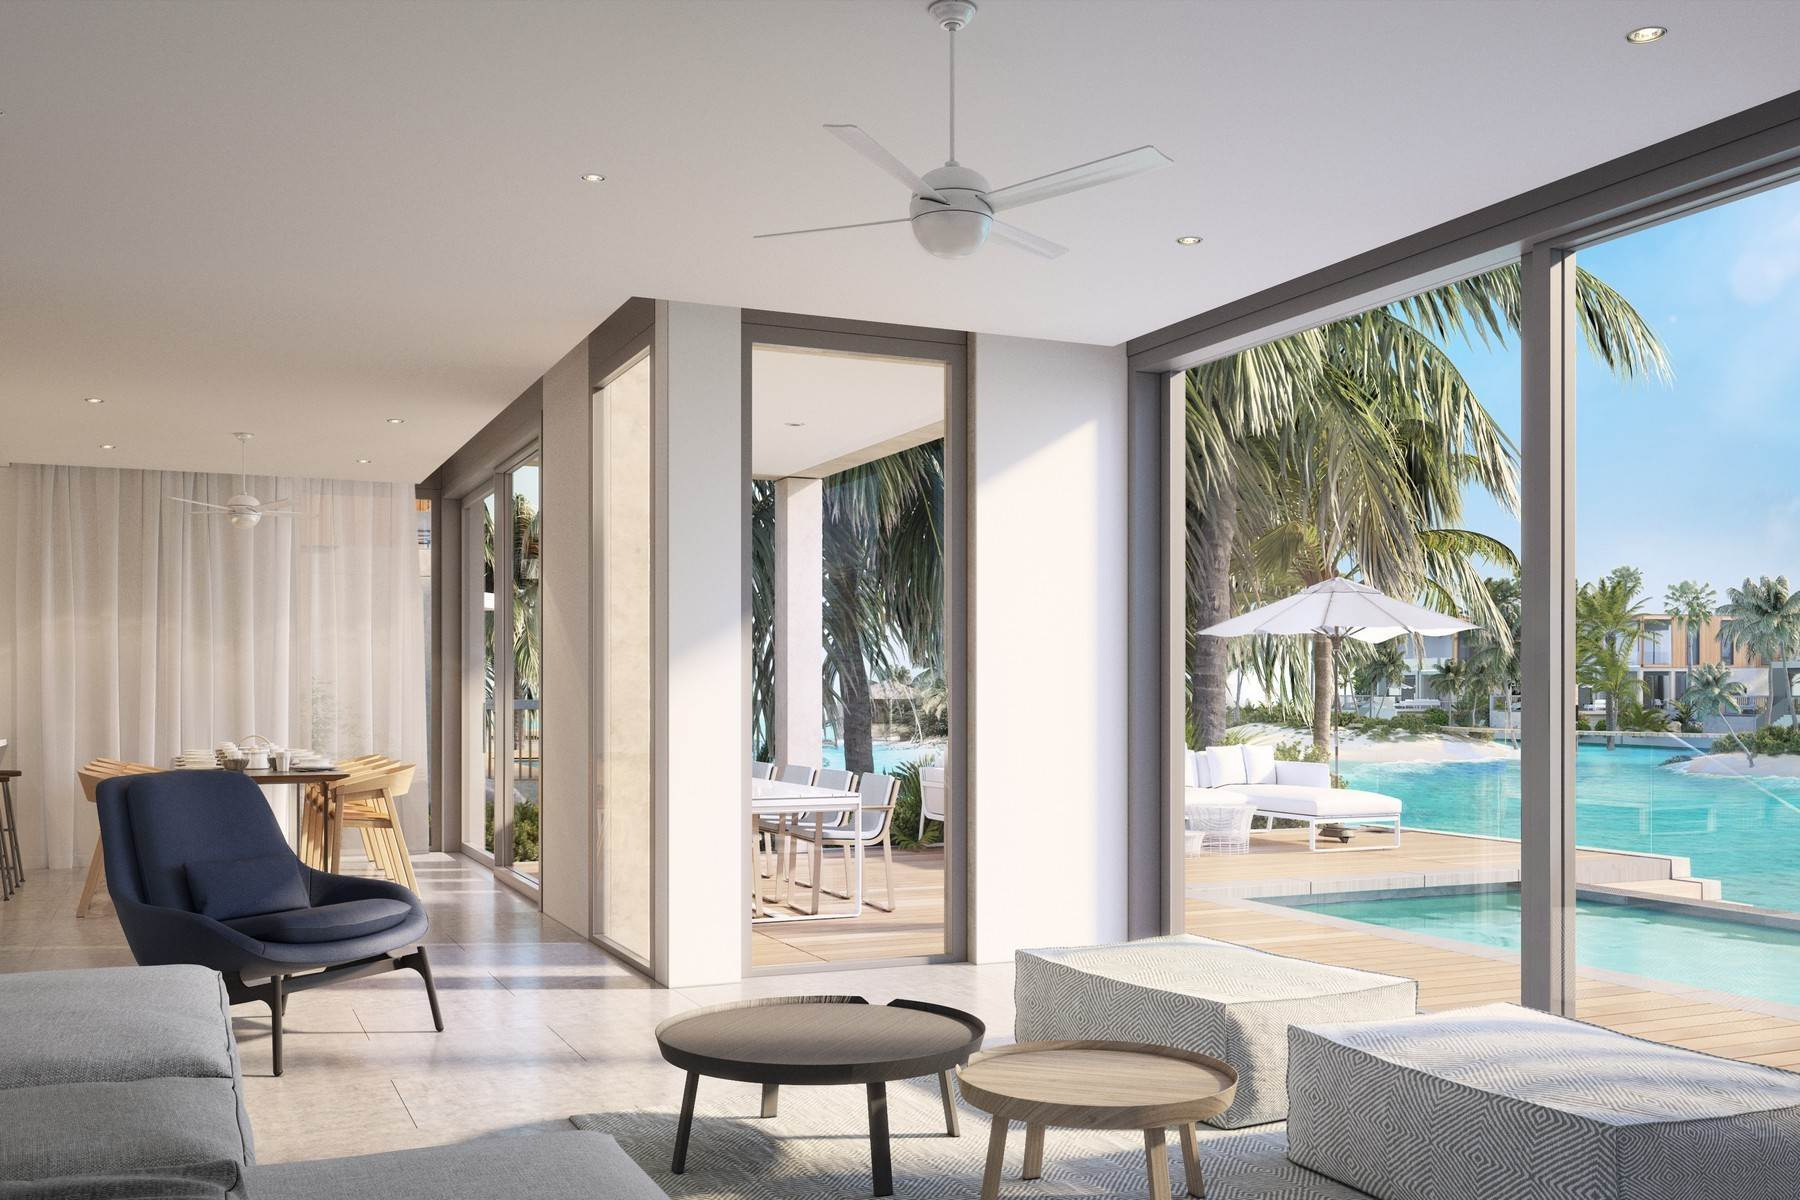 7. Single Family Homes for Sale at SOUTH BANK - THE LAGOON II - LAGOON VILLA 18 South Bank, Long Bay, Providenciales Turks And Caicos Islands